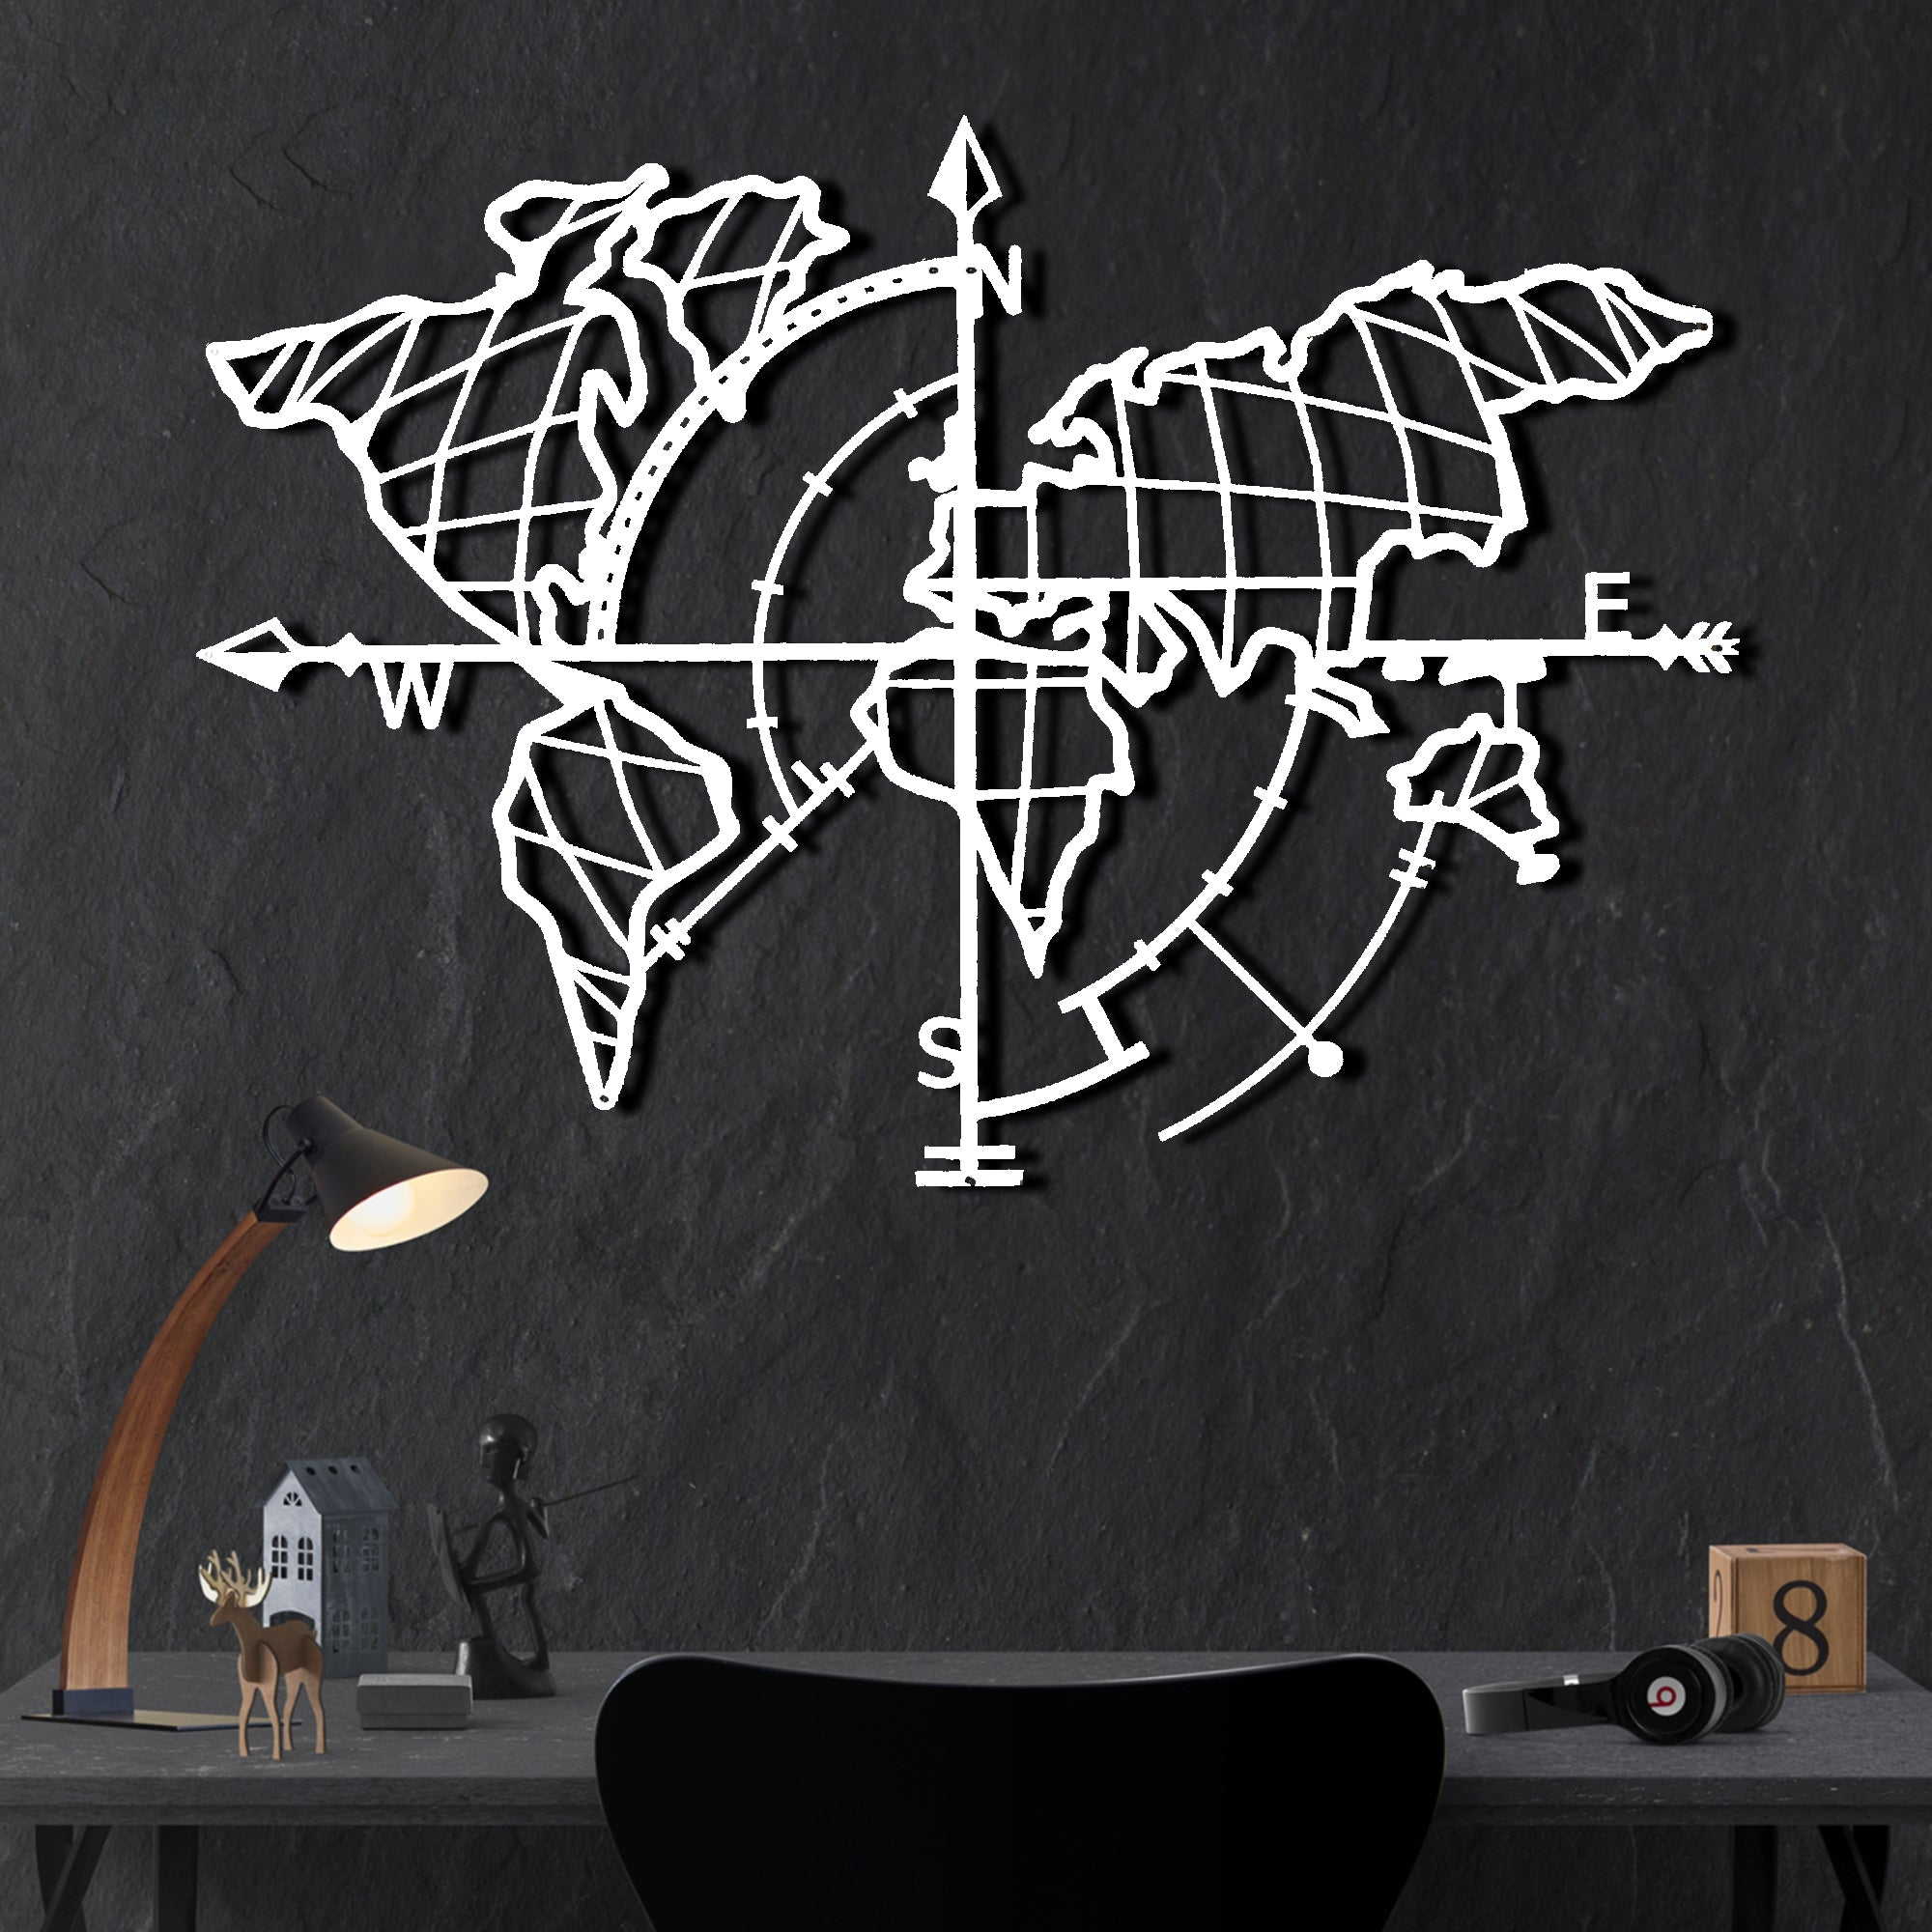 Bystag Metal Decorative Wall art world map compass- metal world map-metal decor-wall art-metal wall art-metal decor-housewarming gift- christmas gift-wall decor-wall hangings- white world map- white metal world map compass